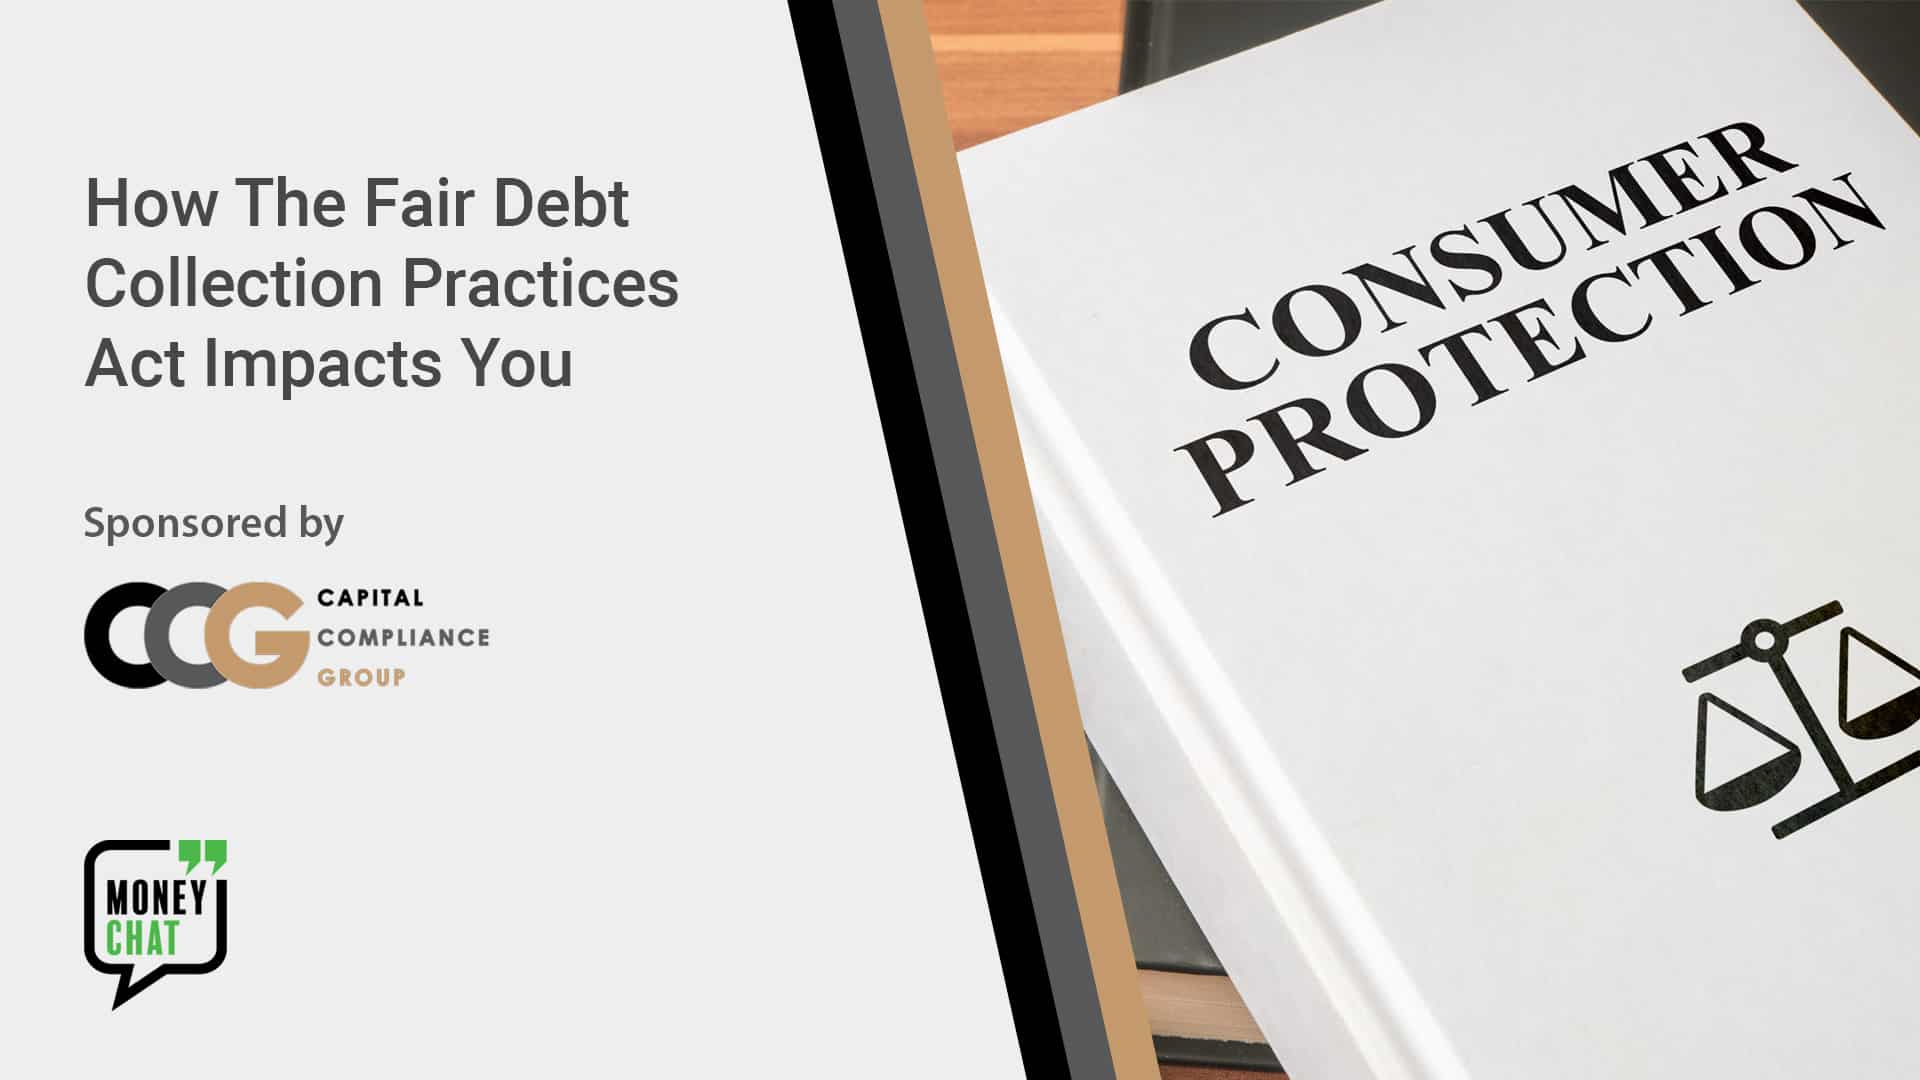 How The Fair Debt Collection Practices Act Impacts You